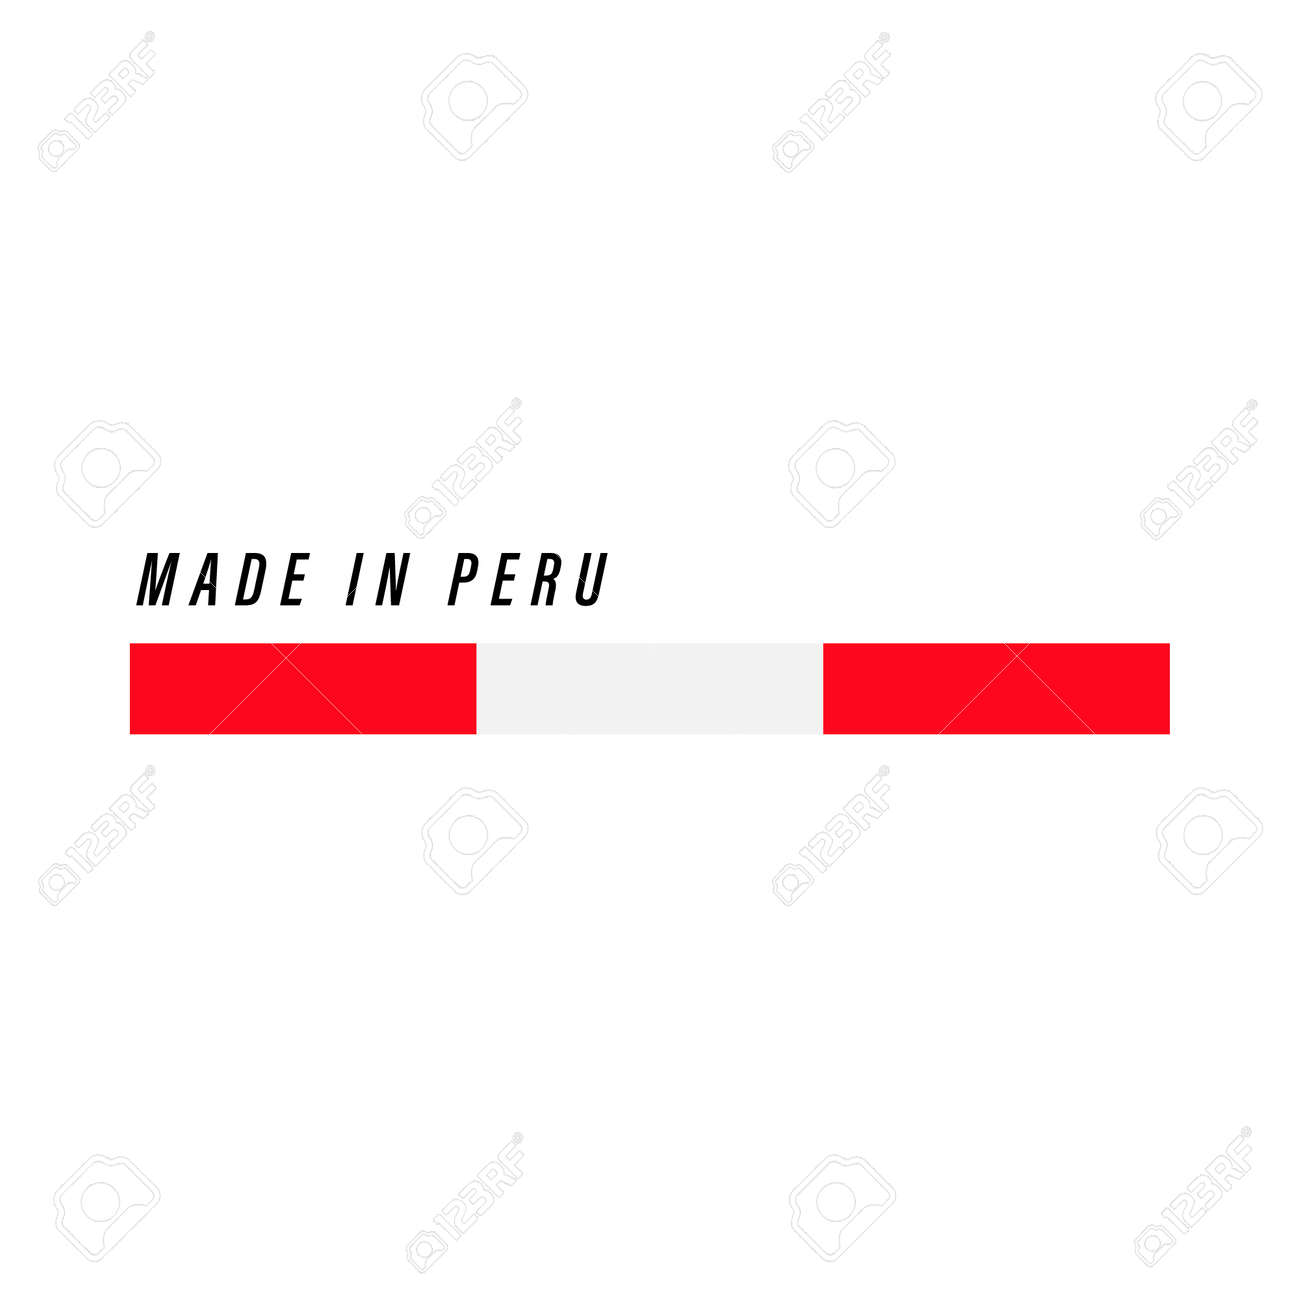 Made in Peru, badge or label with flag isolated on white background - 168929112